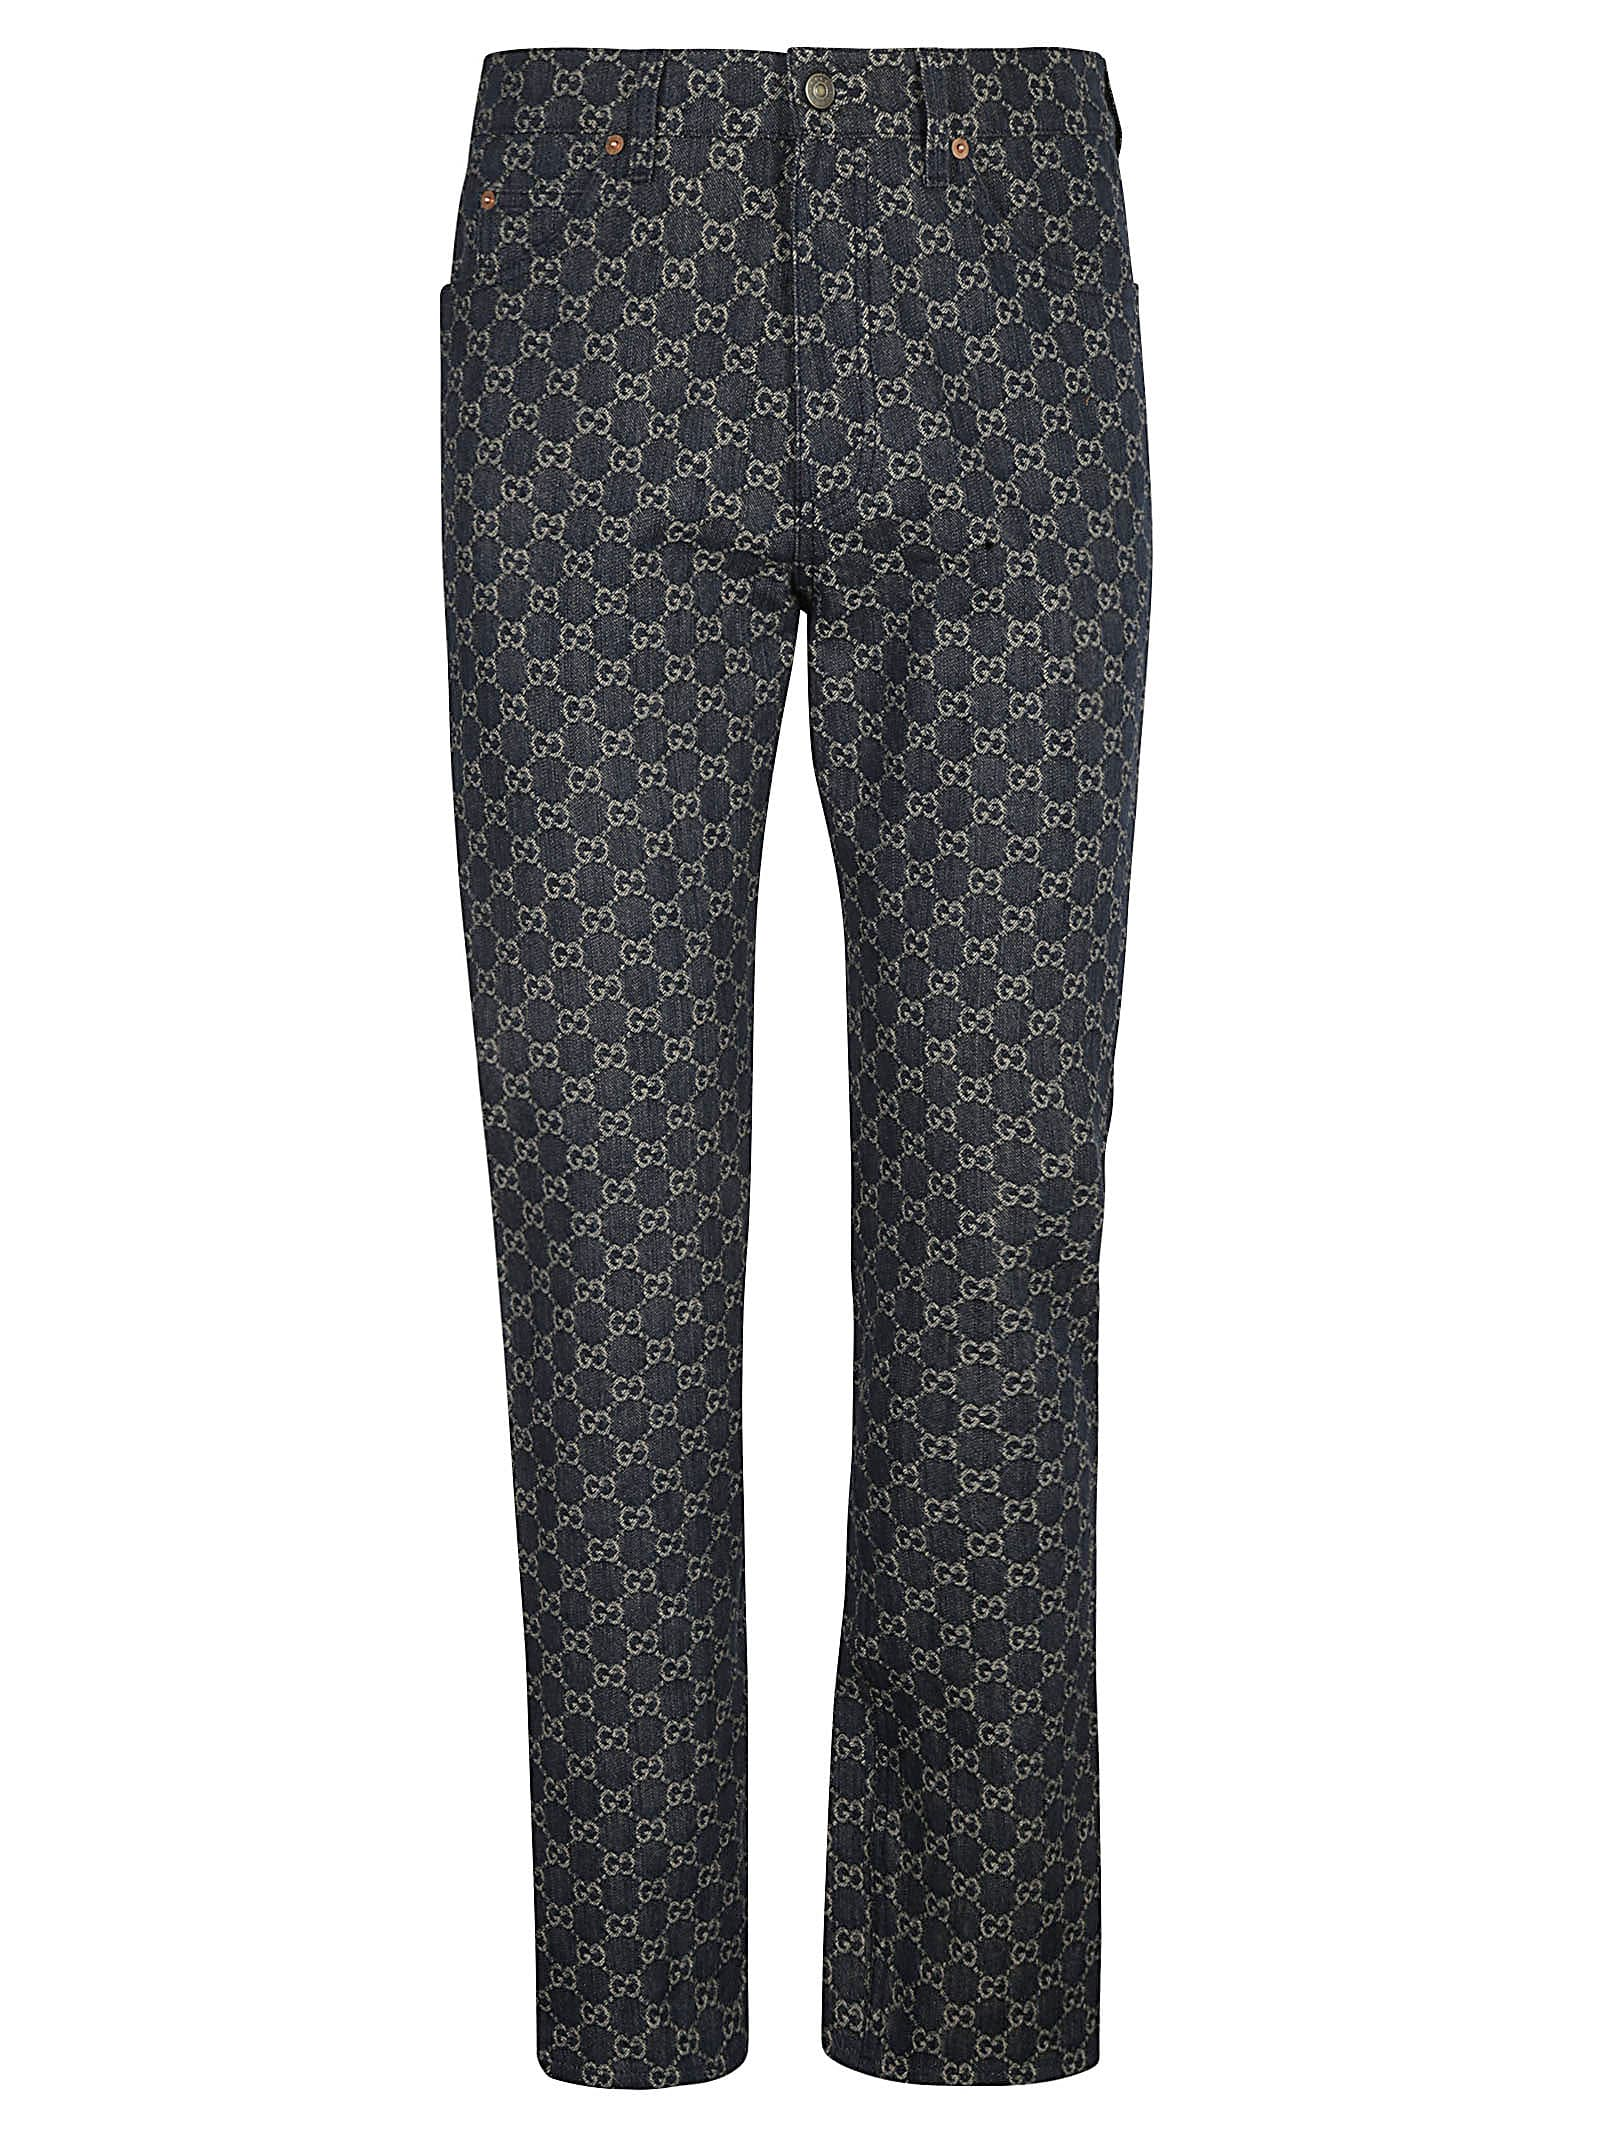 Gucci ALL-OVER LOGO JEANS